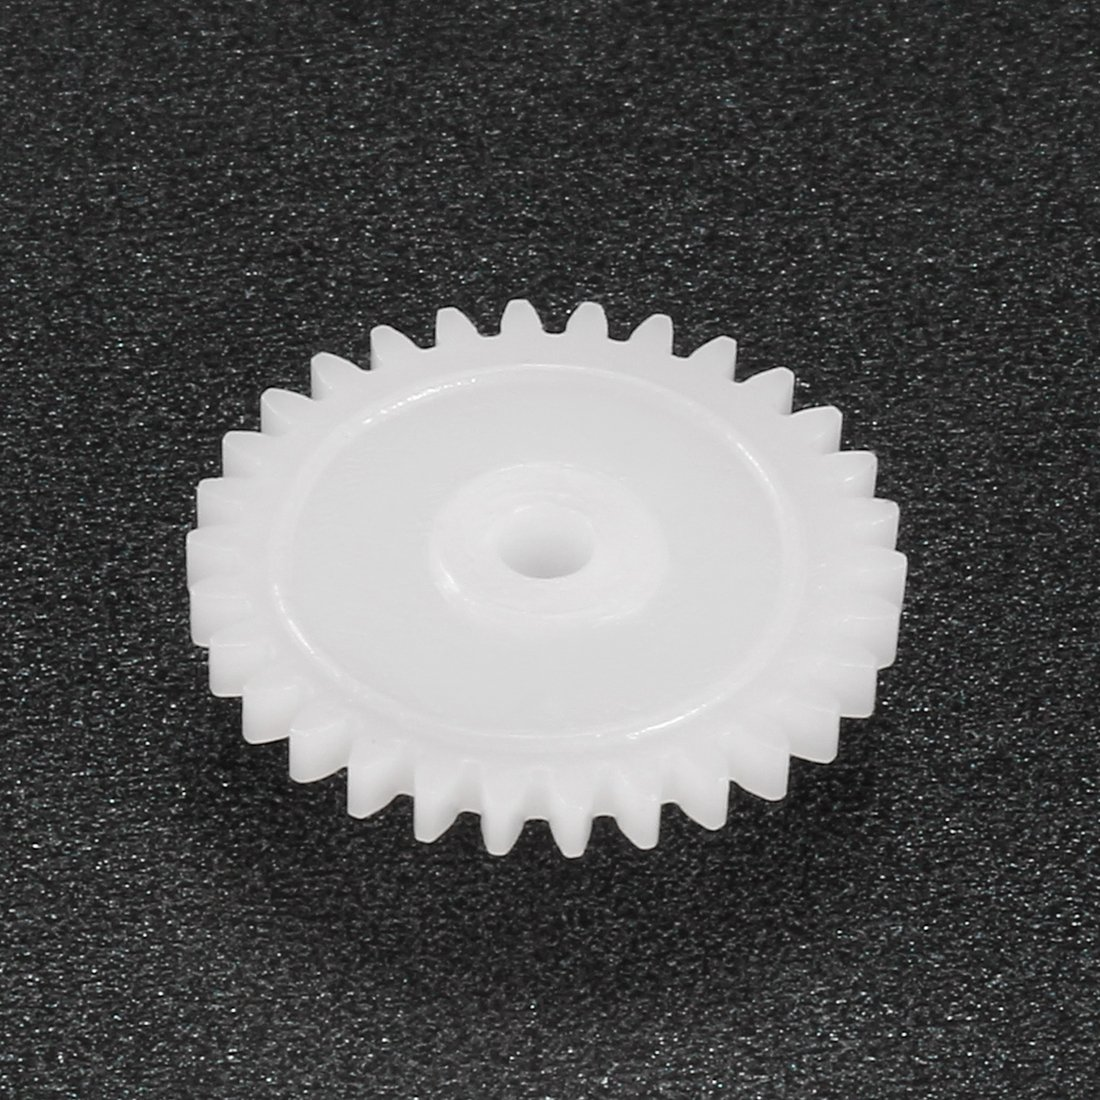 uxcell Plastic Gear DIY Reduction Worm Gears Model 50102A for RC Car Robot Motor 20pcs